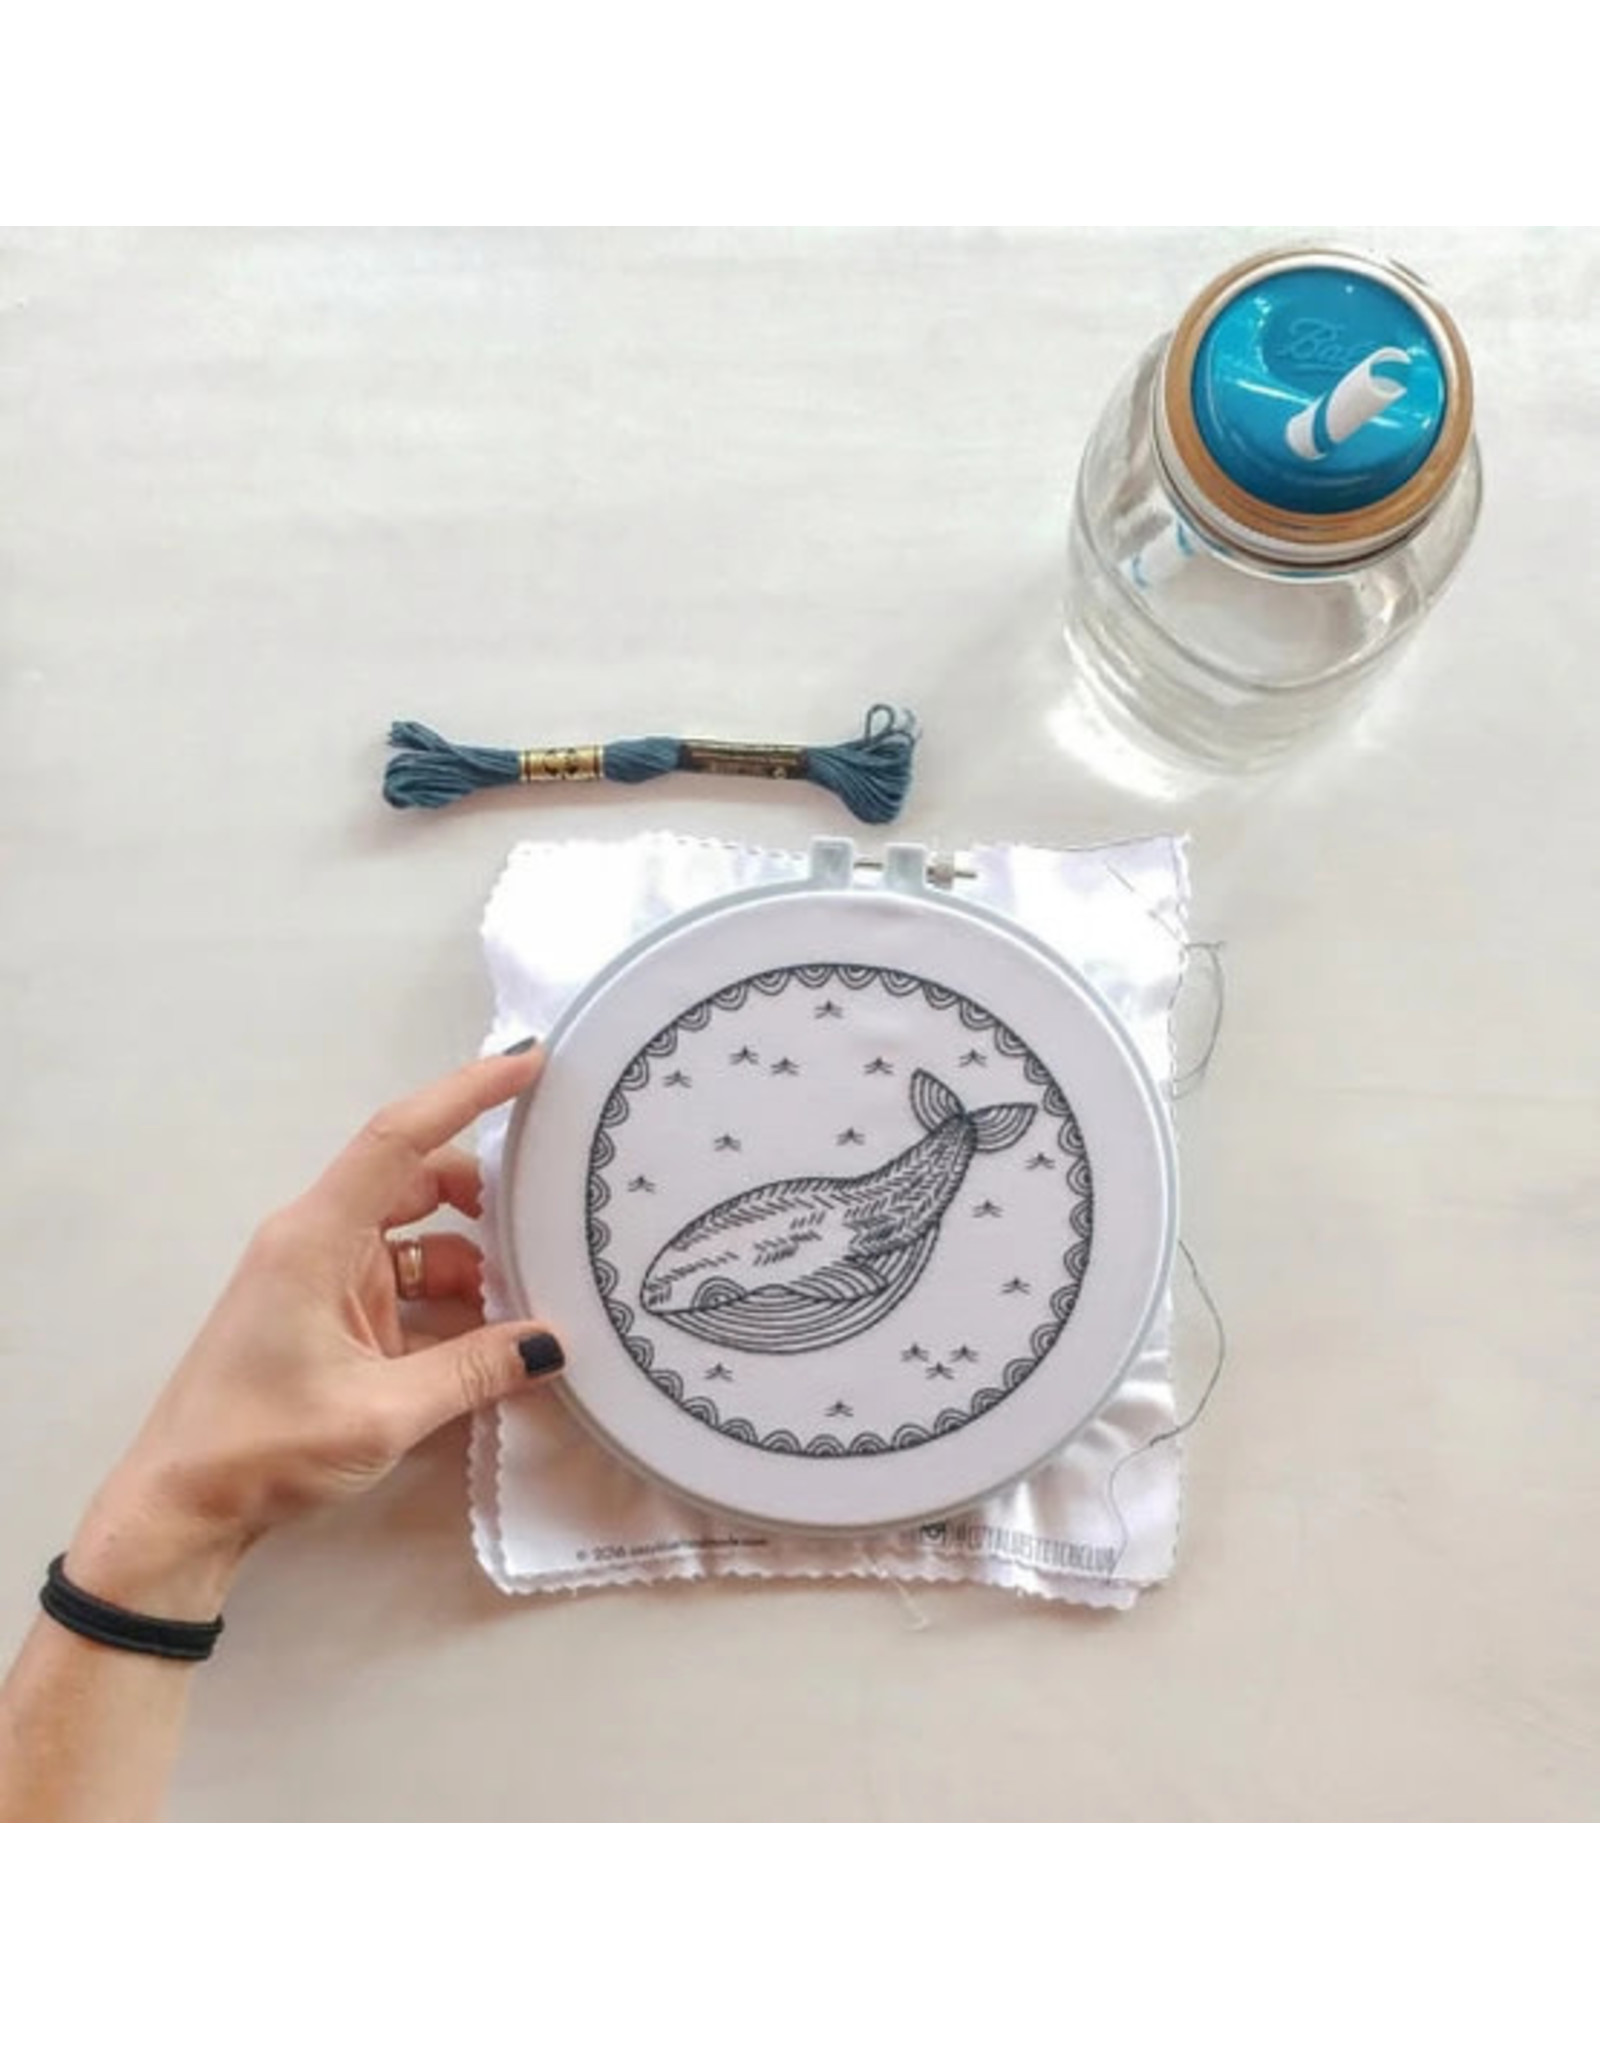 cozyblue Whale of a Time Embroidery Kit from cozyblue